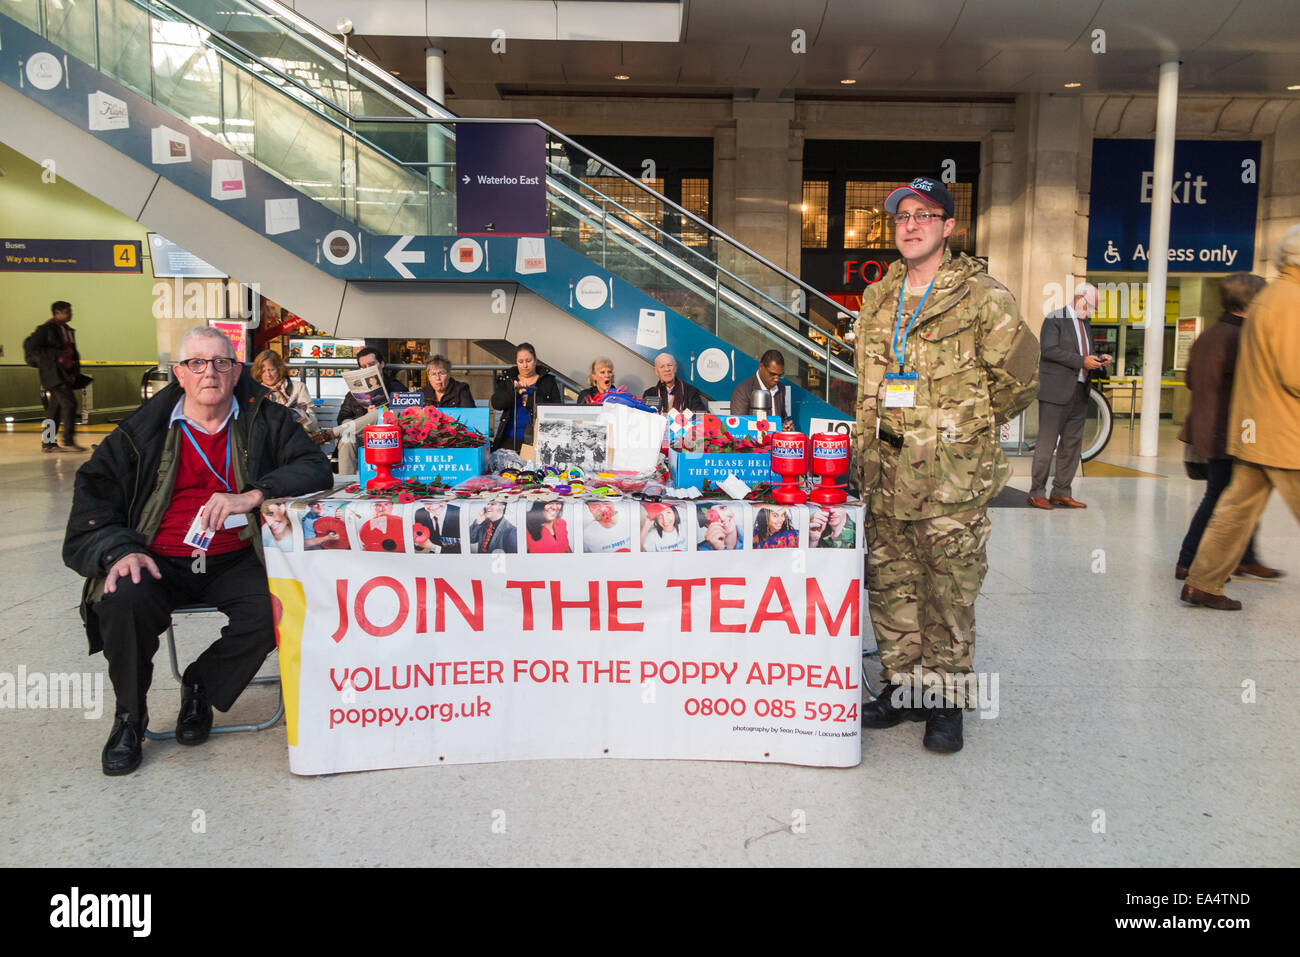 volunteers selling poppies for the poppy appeal for remembrance